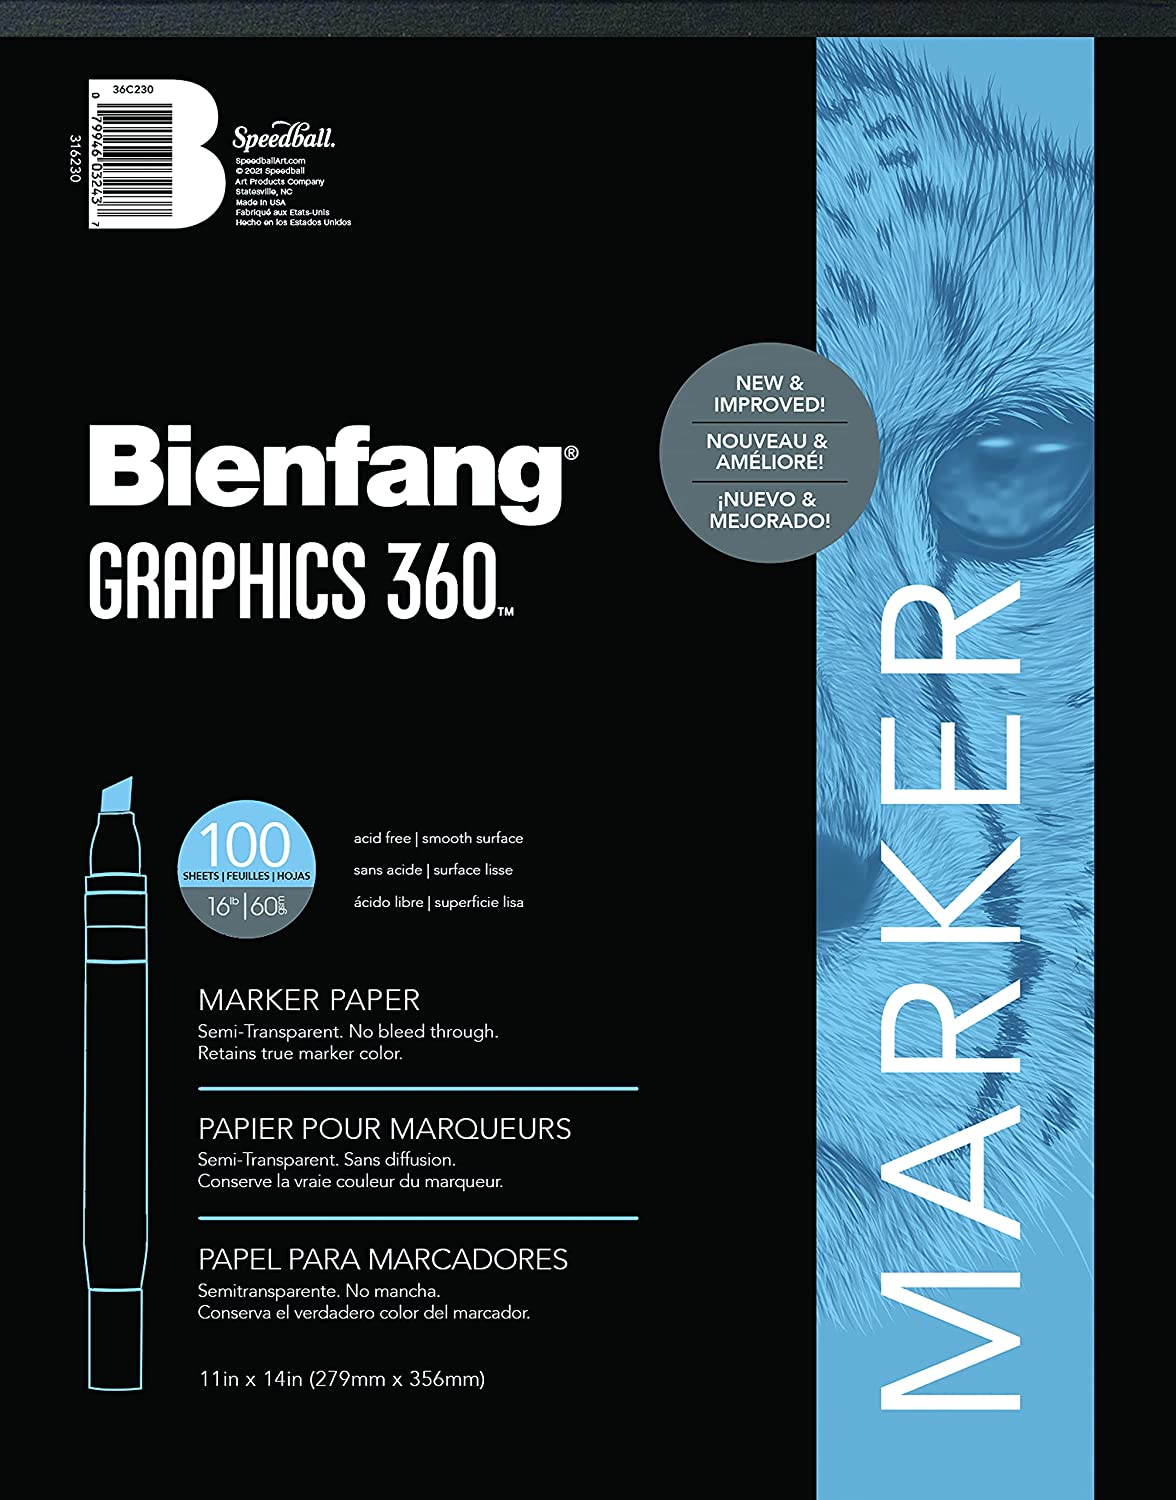 Oklahoma City Mall Bienfang Graphics Indianapolis Mall 360 Marker Paper Pad 11-Inch by 14-Inch 100